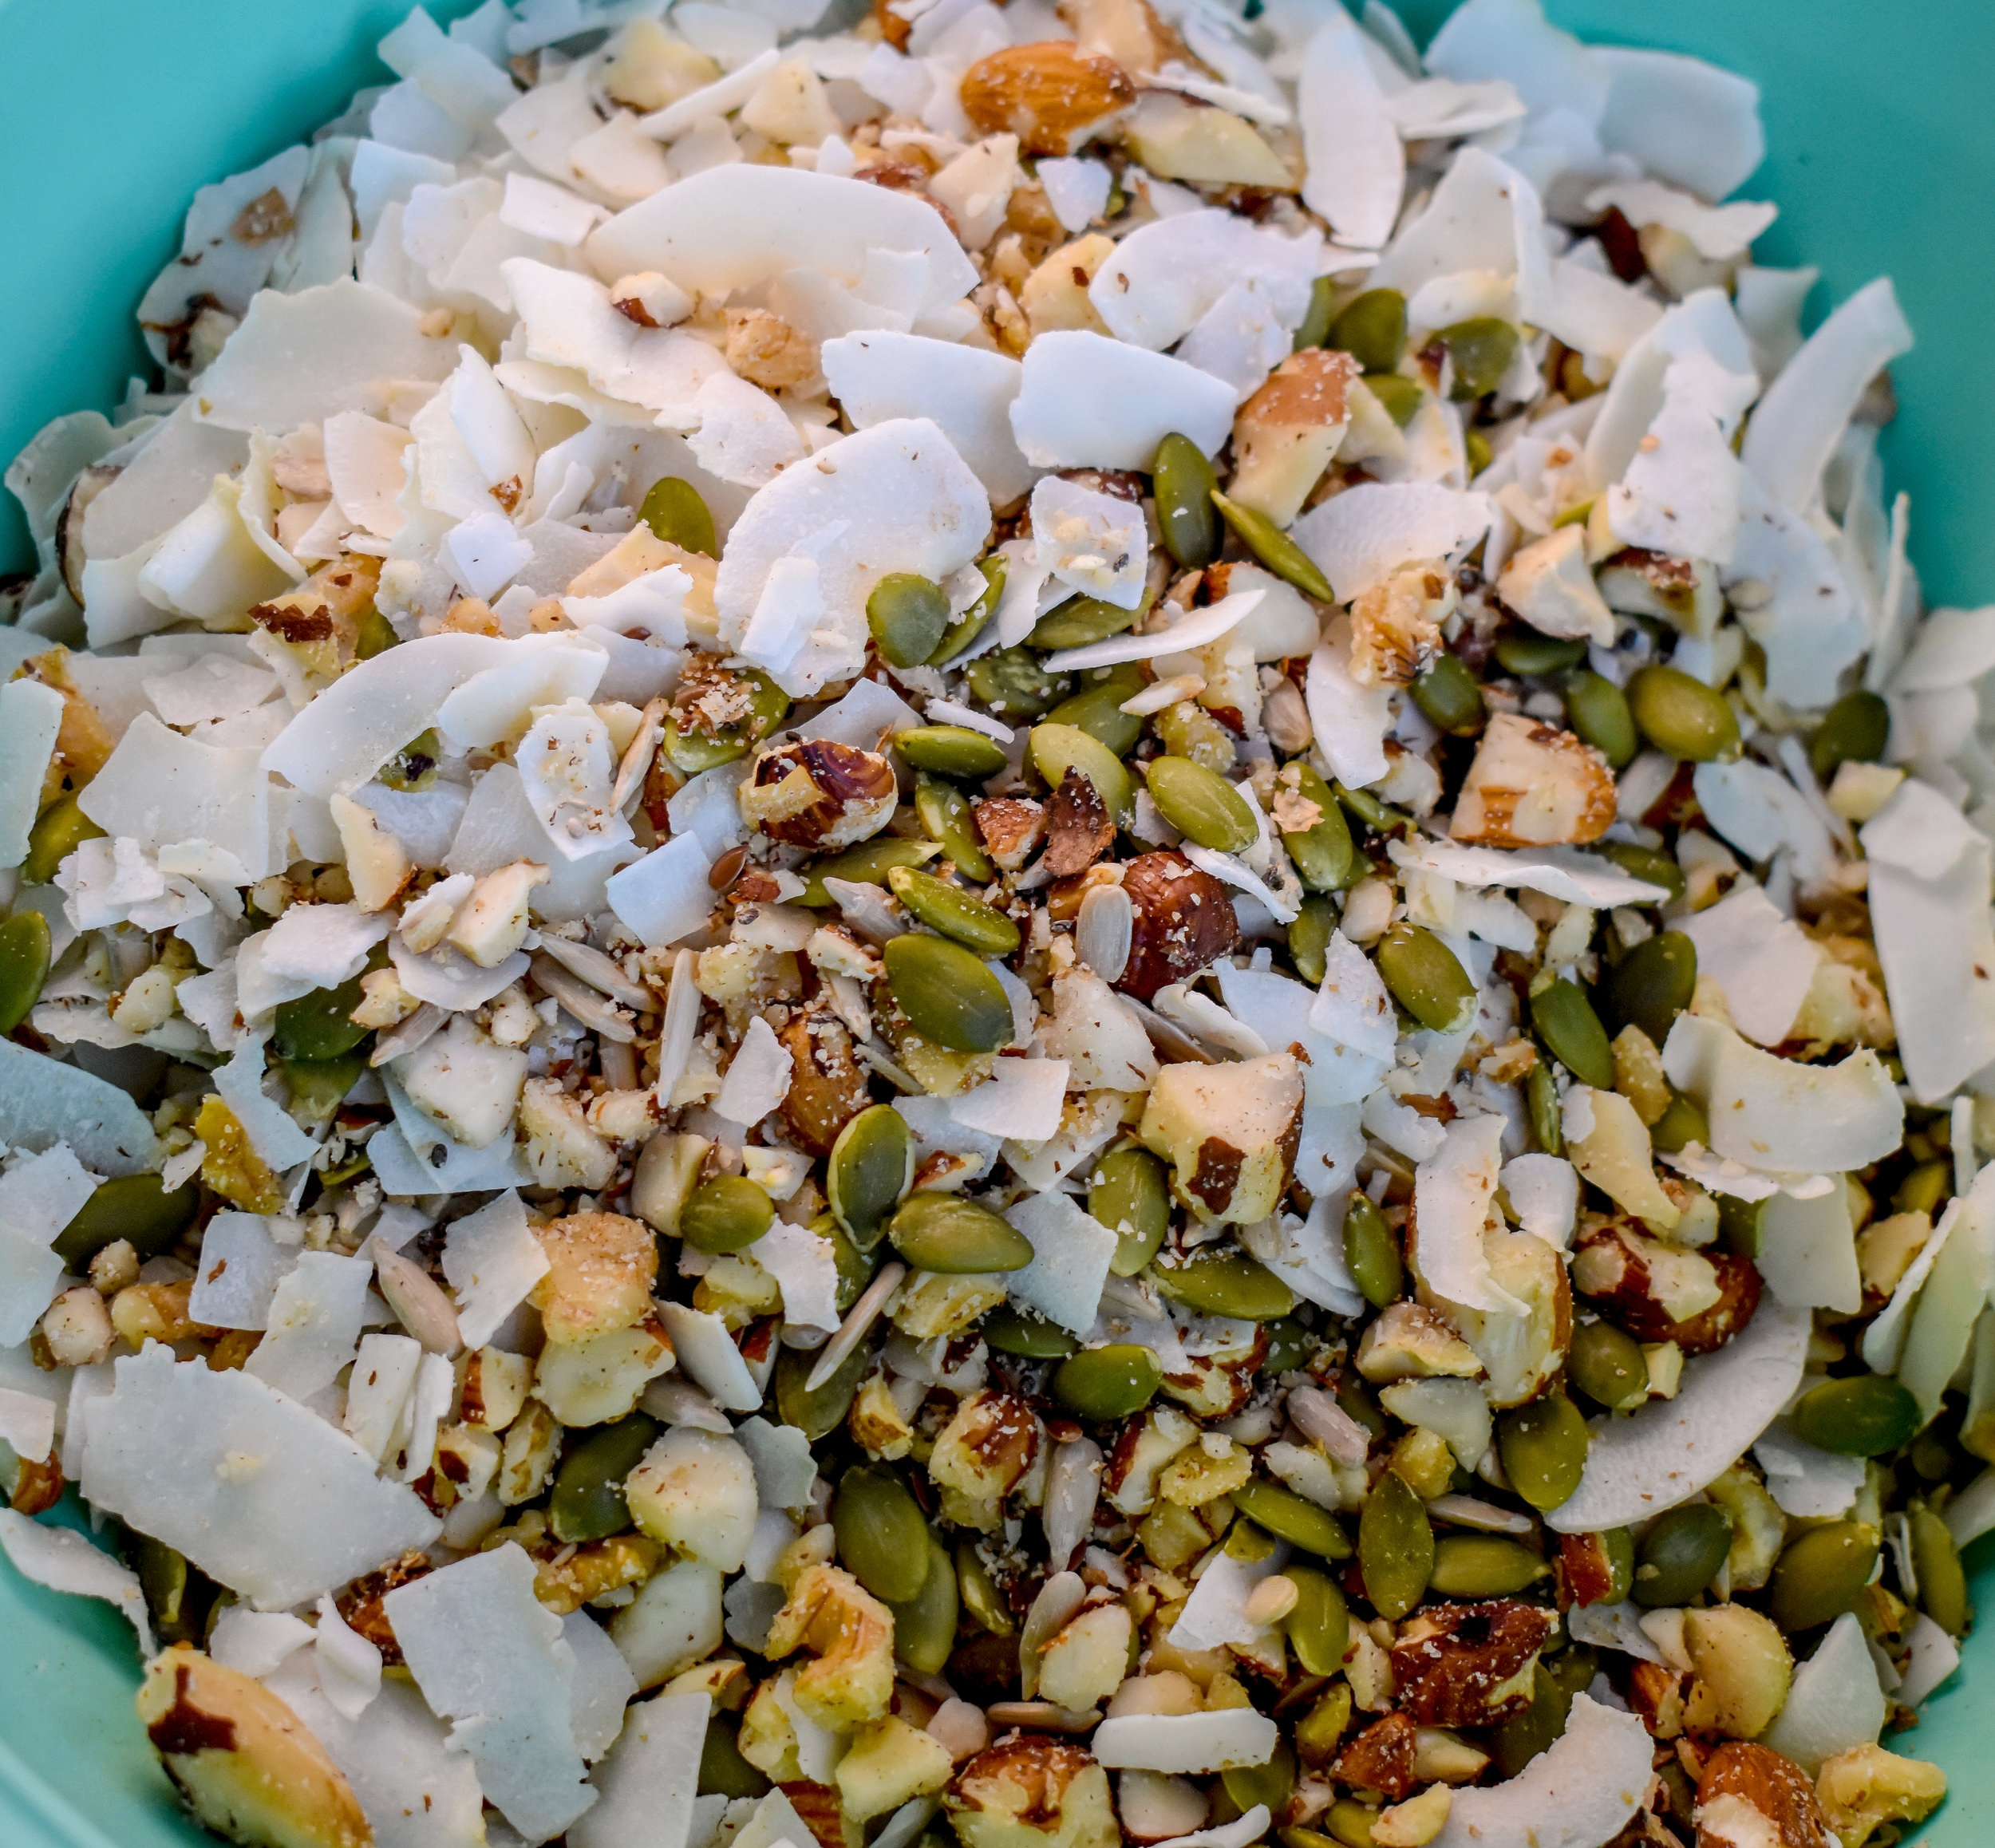 3. Add nuts to coconut flakes as well as the rest of the dry ingredients. Mix well.